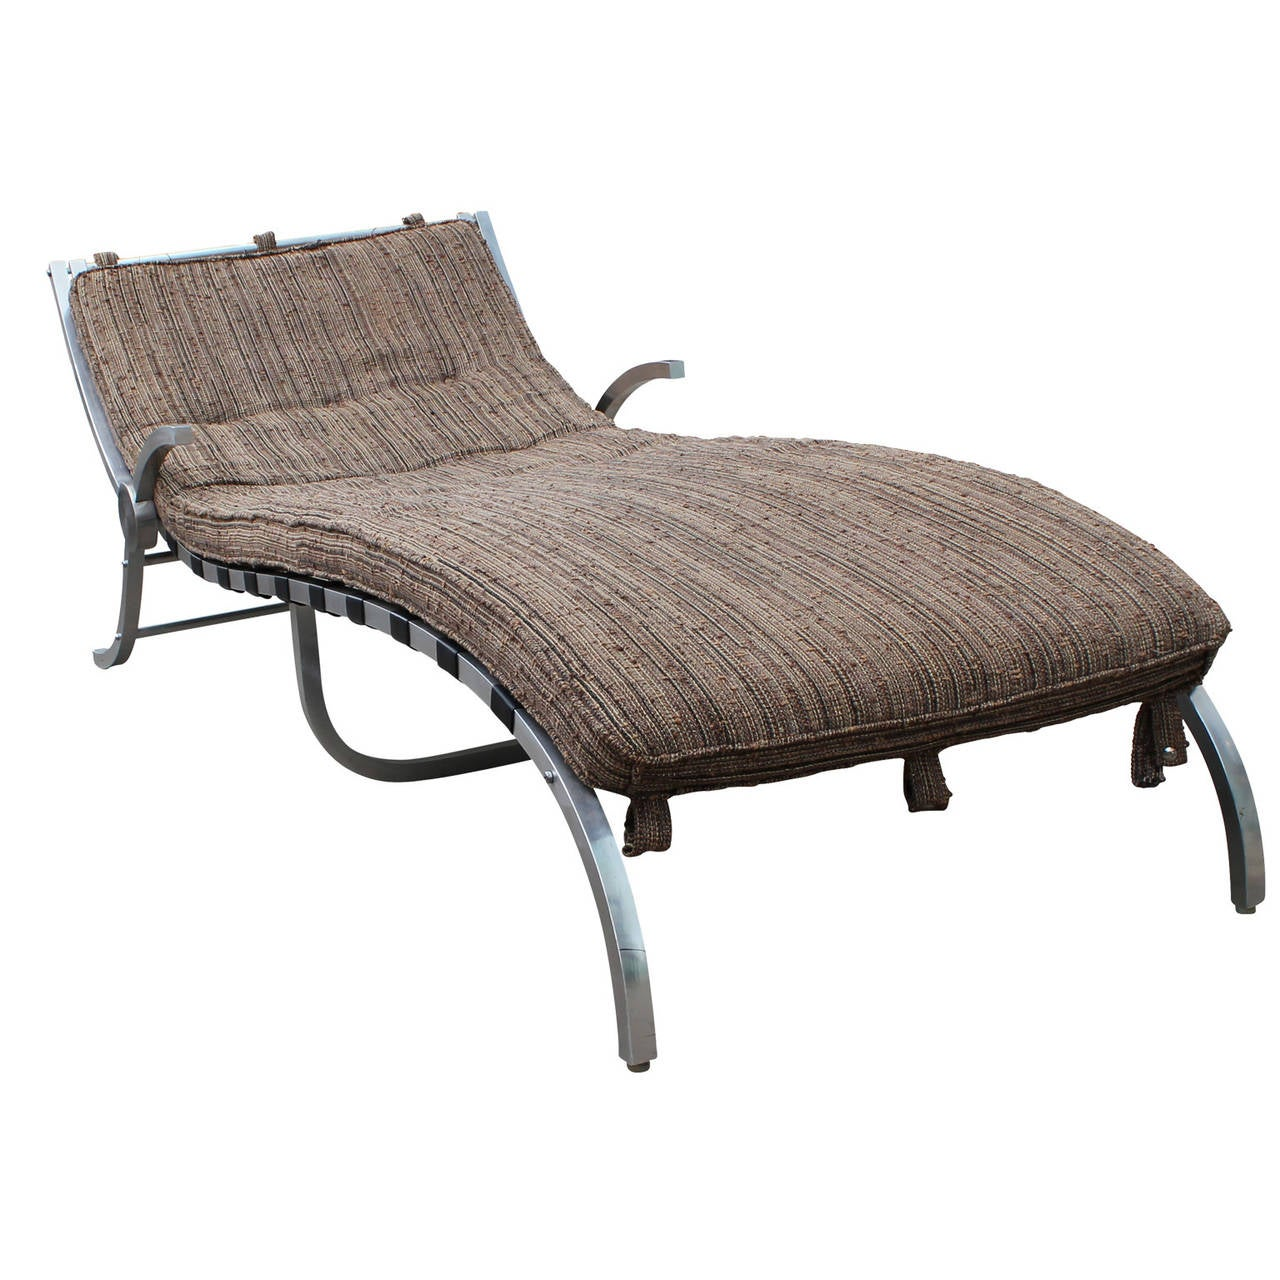 Sculptural mid century modern aluminum chaise lounge for for Aluminum chaise lounges